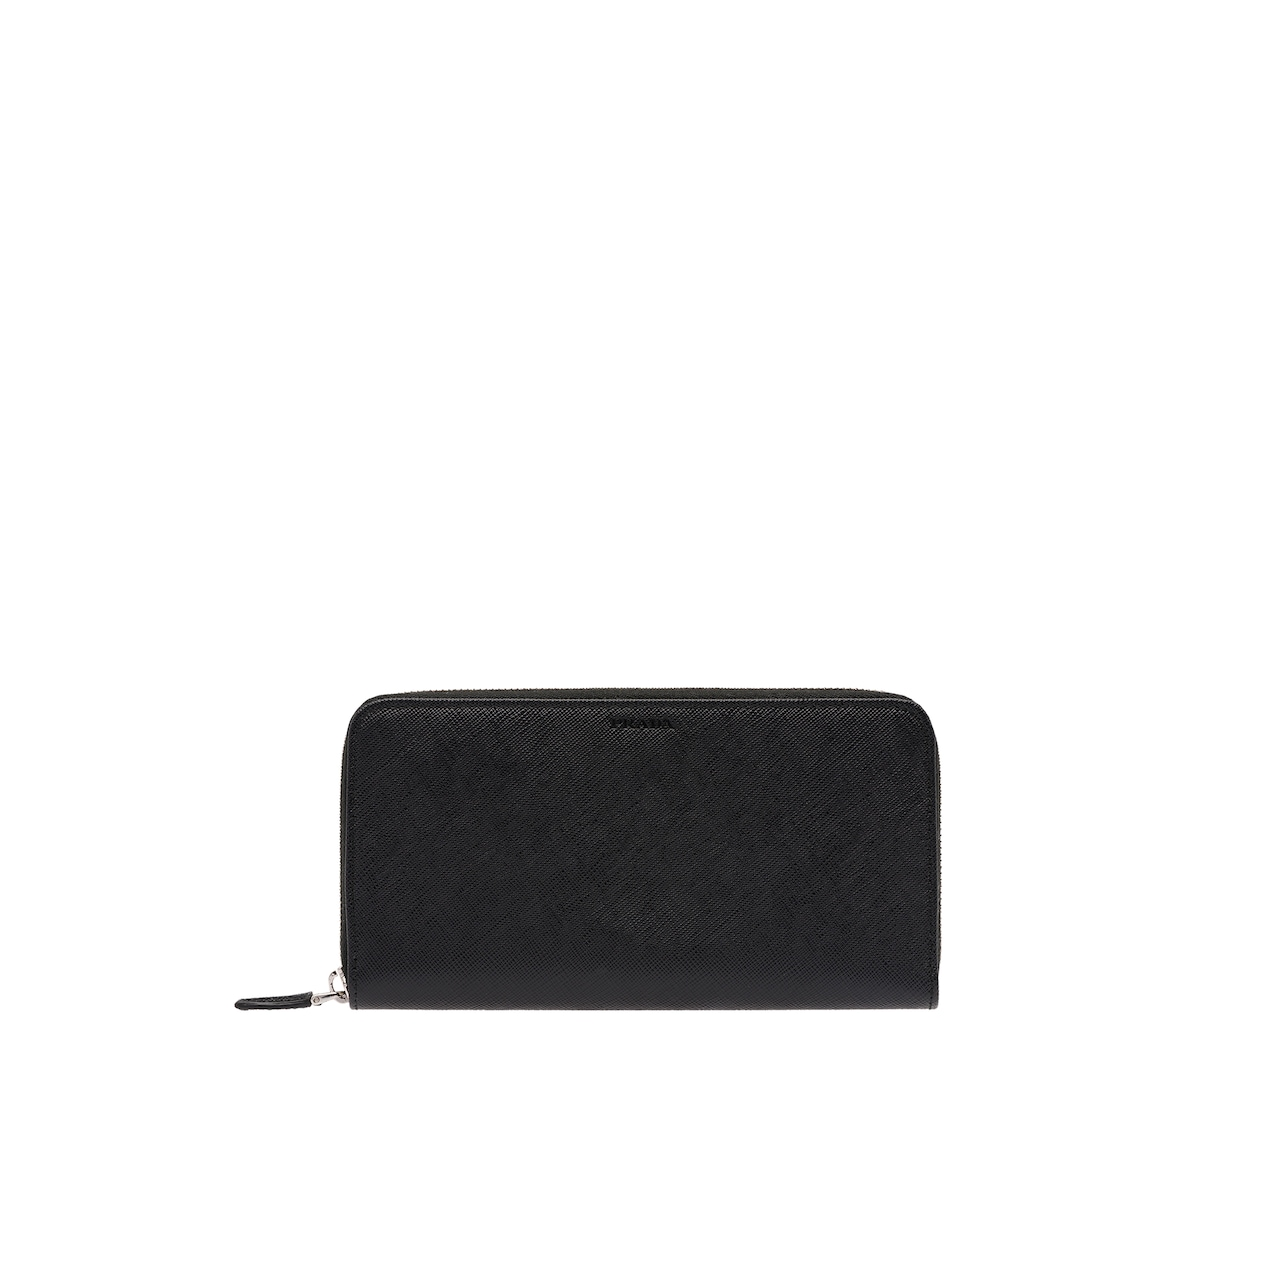 Prada Saffiano leather wallet 1